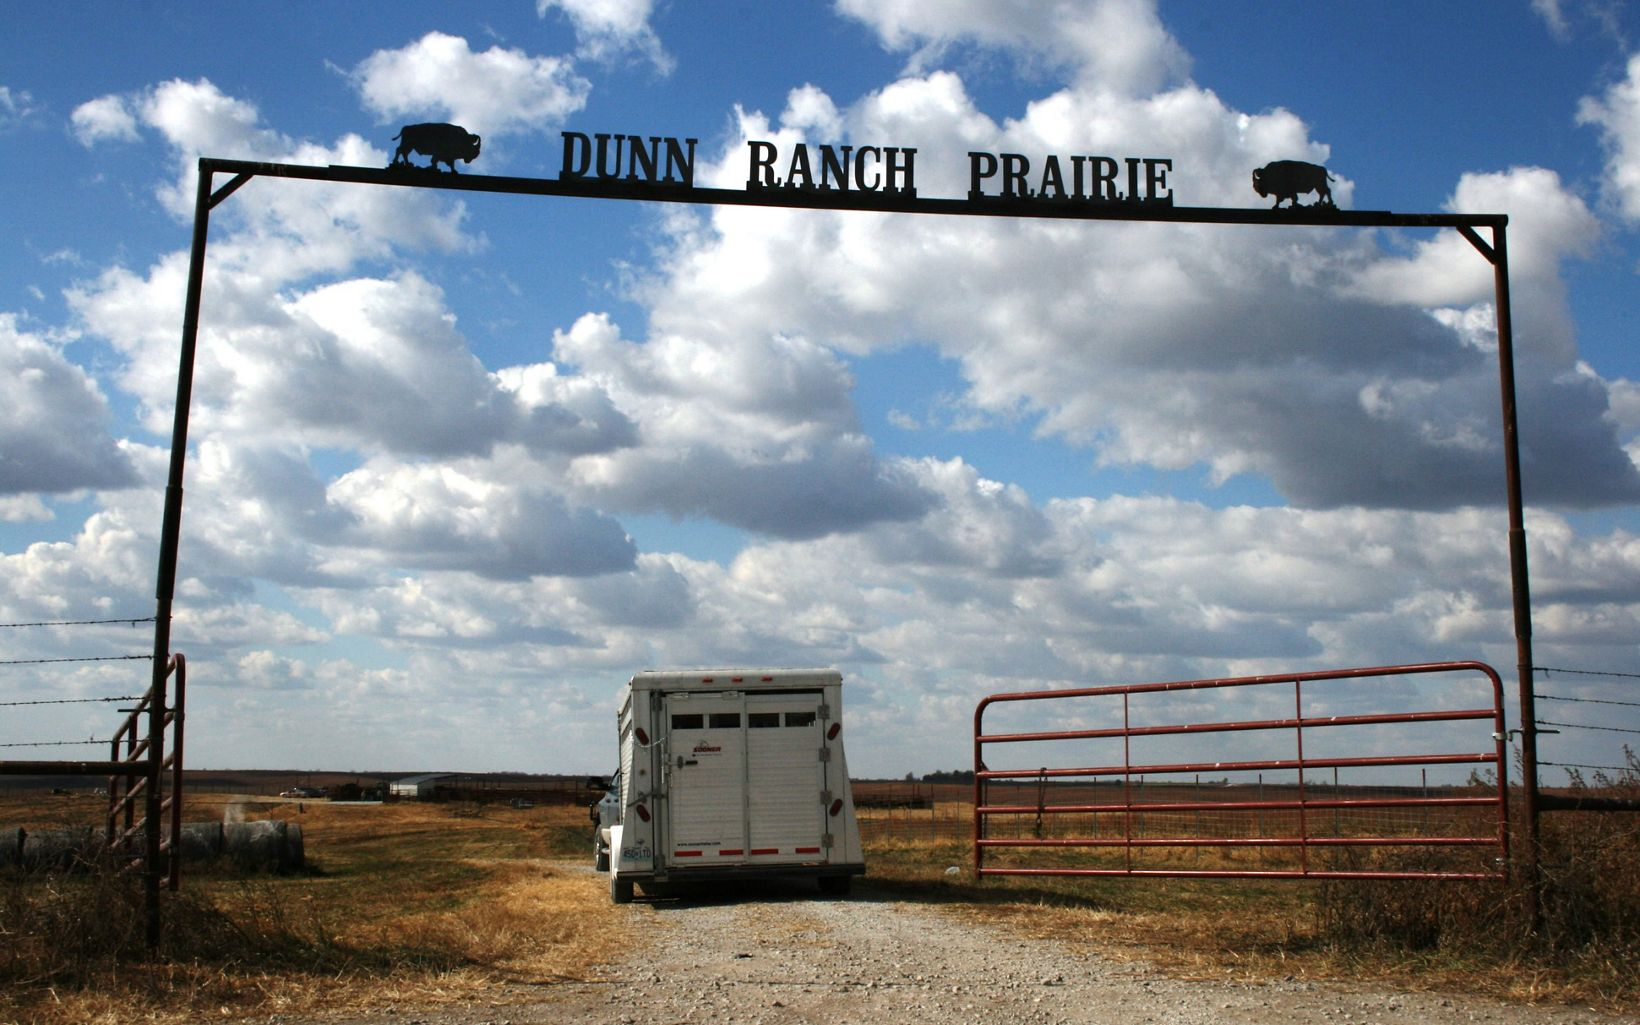 a trailer is pulled through the gates of Dunn Ranch Prairie